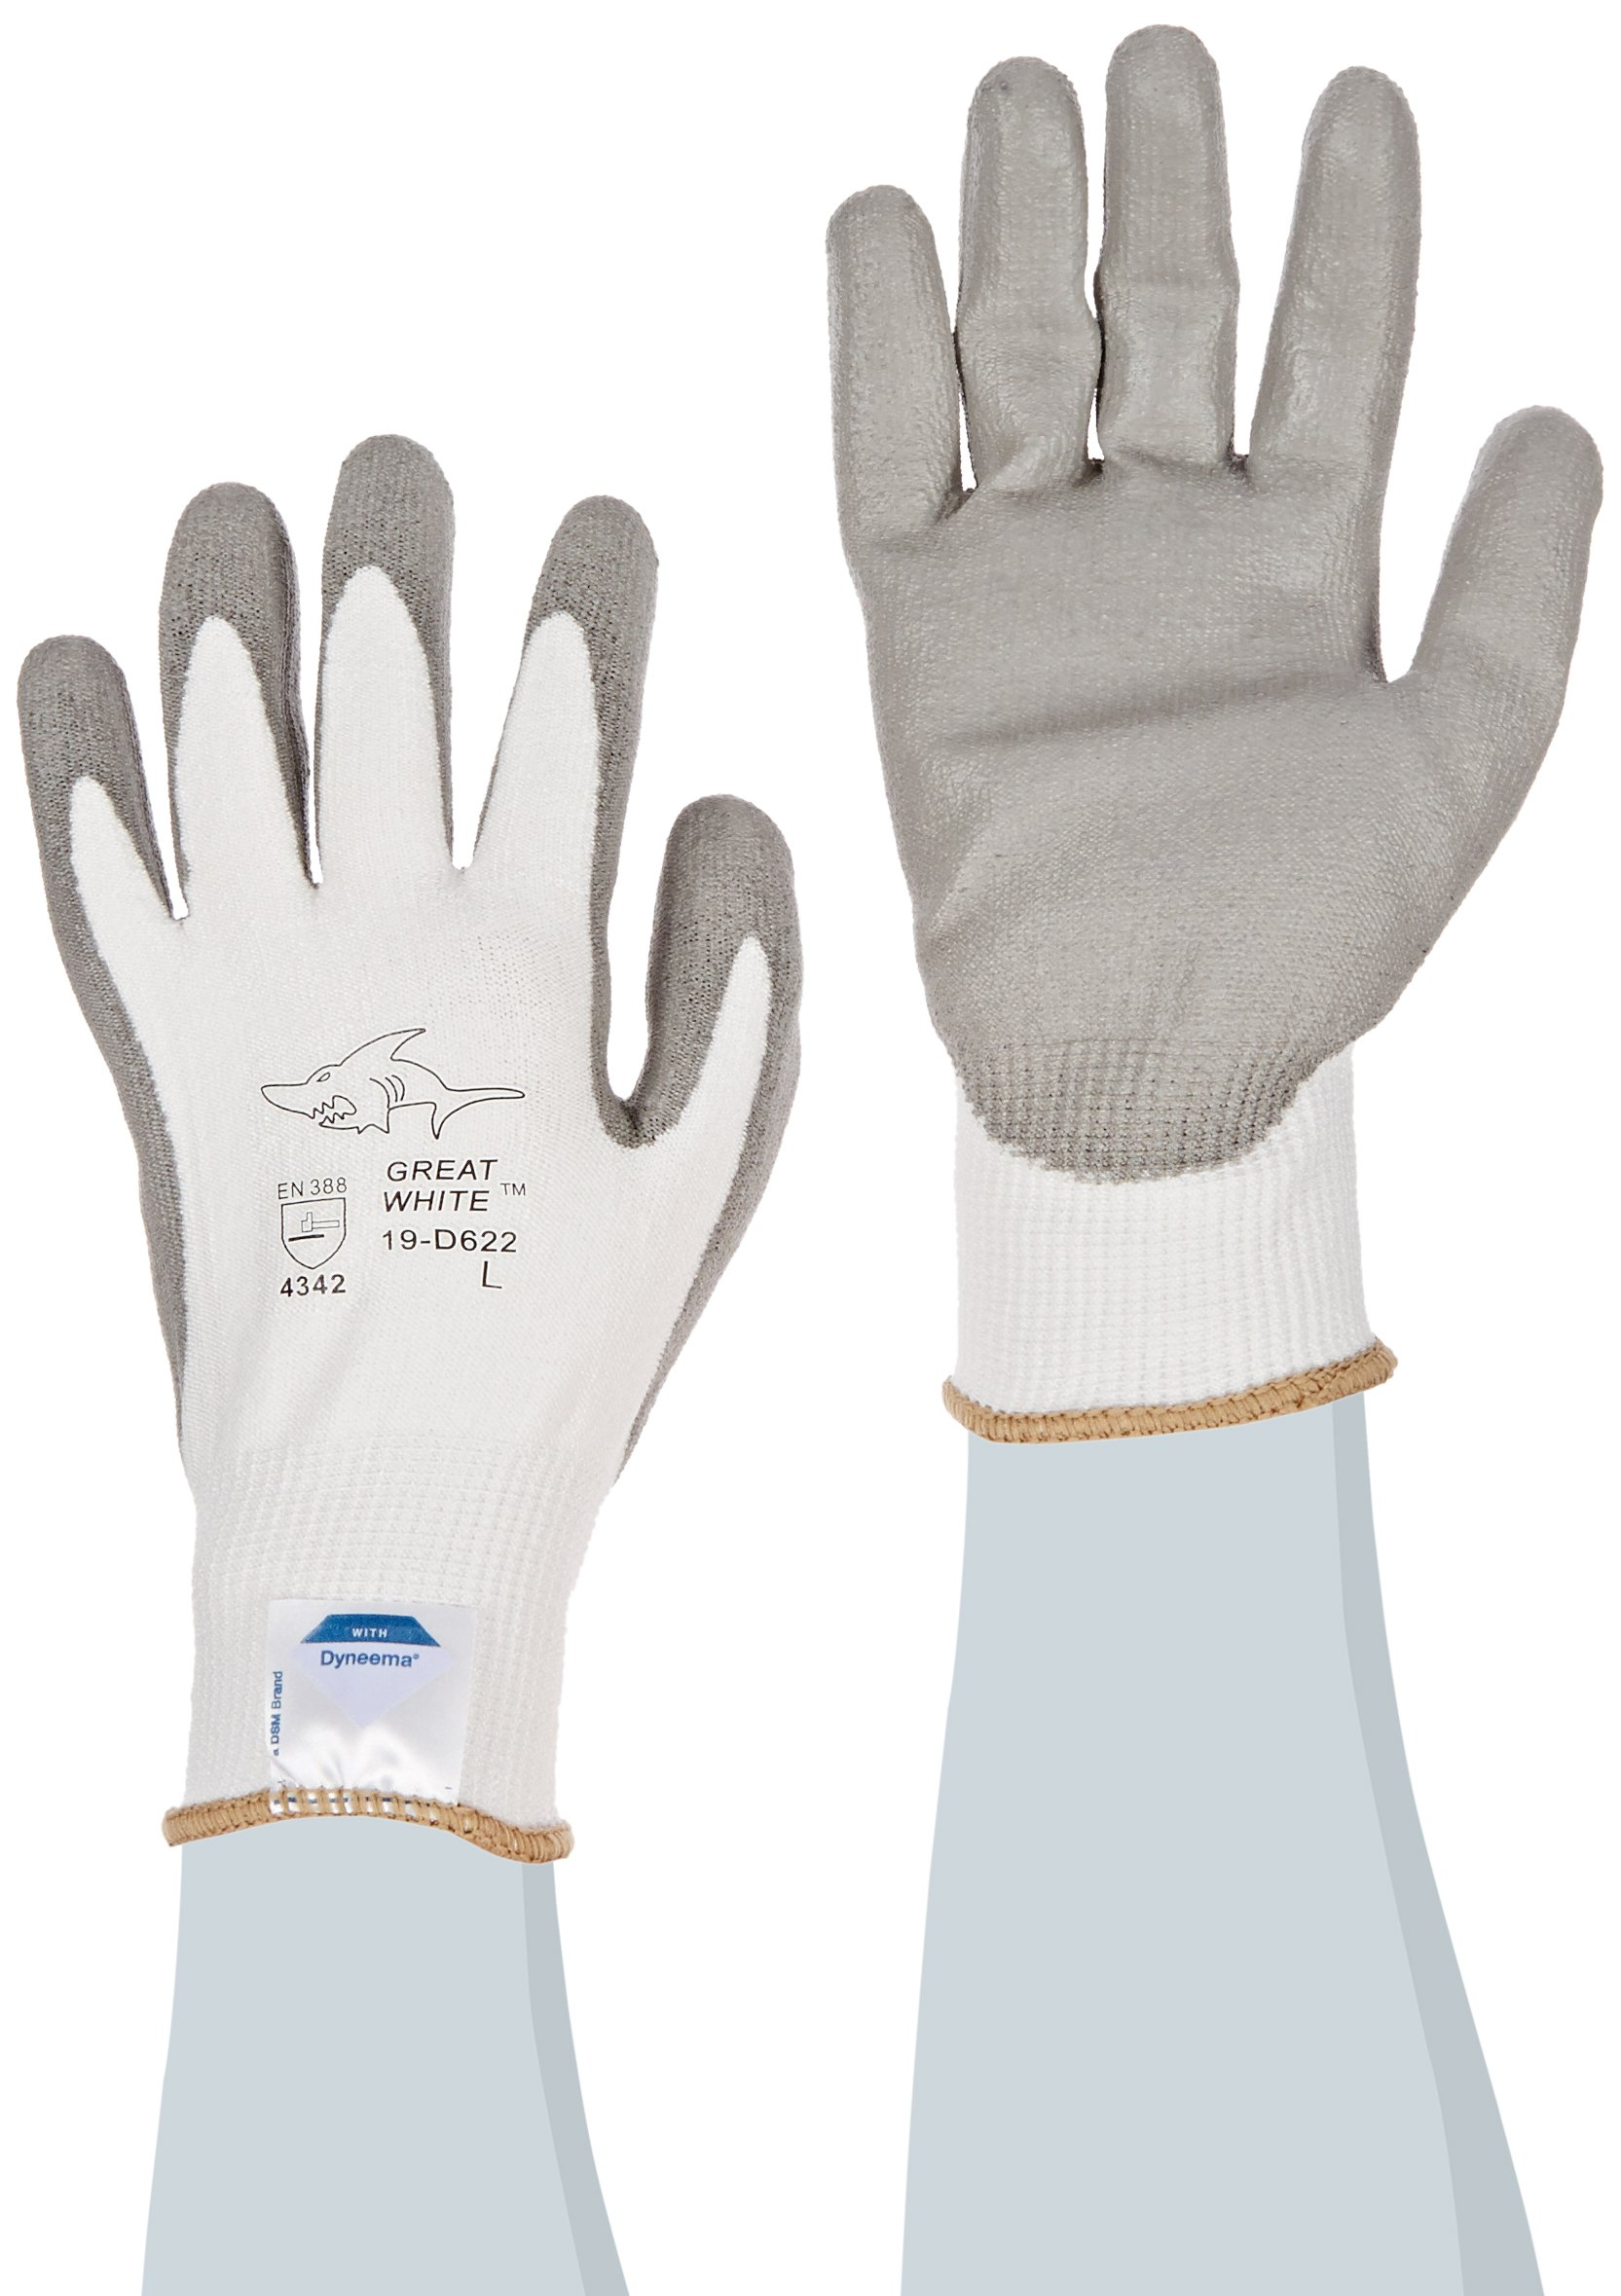 Great White 19-D622/L 13-Gauge  Dyneema/Lycra Cut Resistant Gloves with Polyurethane Coated Palm and Fingers, White/Gray, Large, 1-Dozen